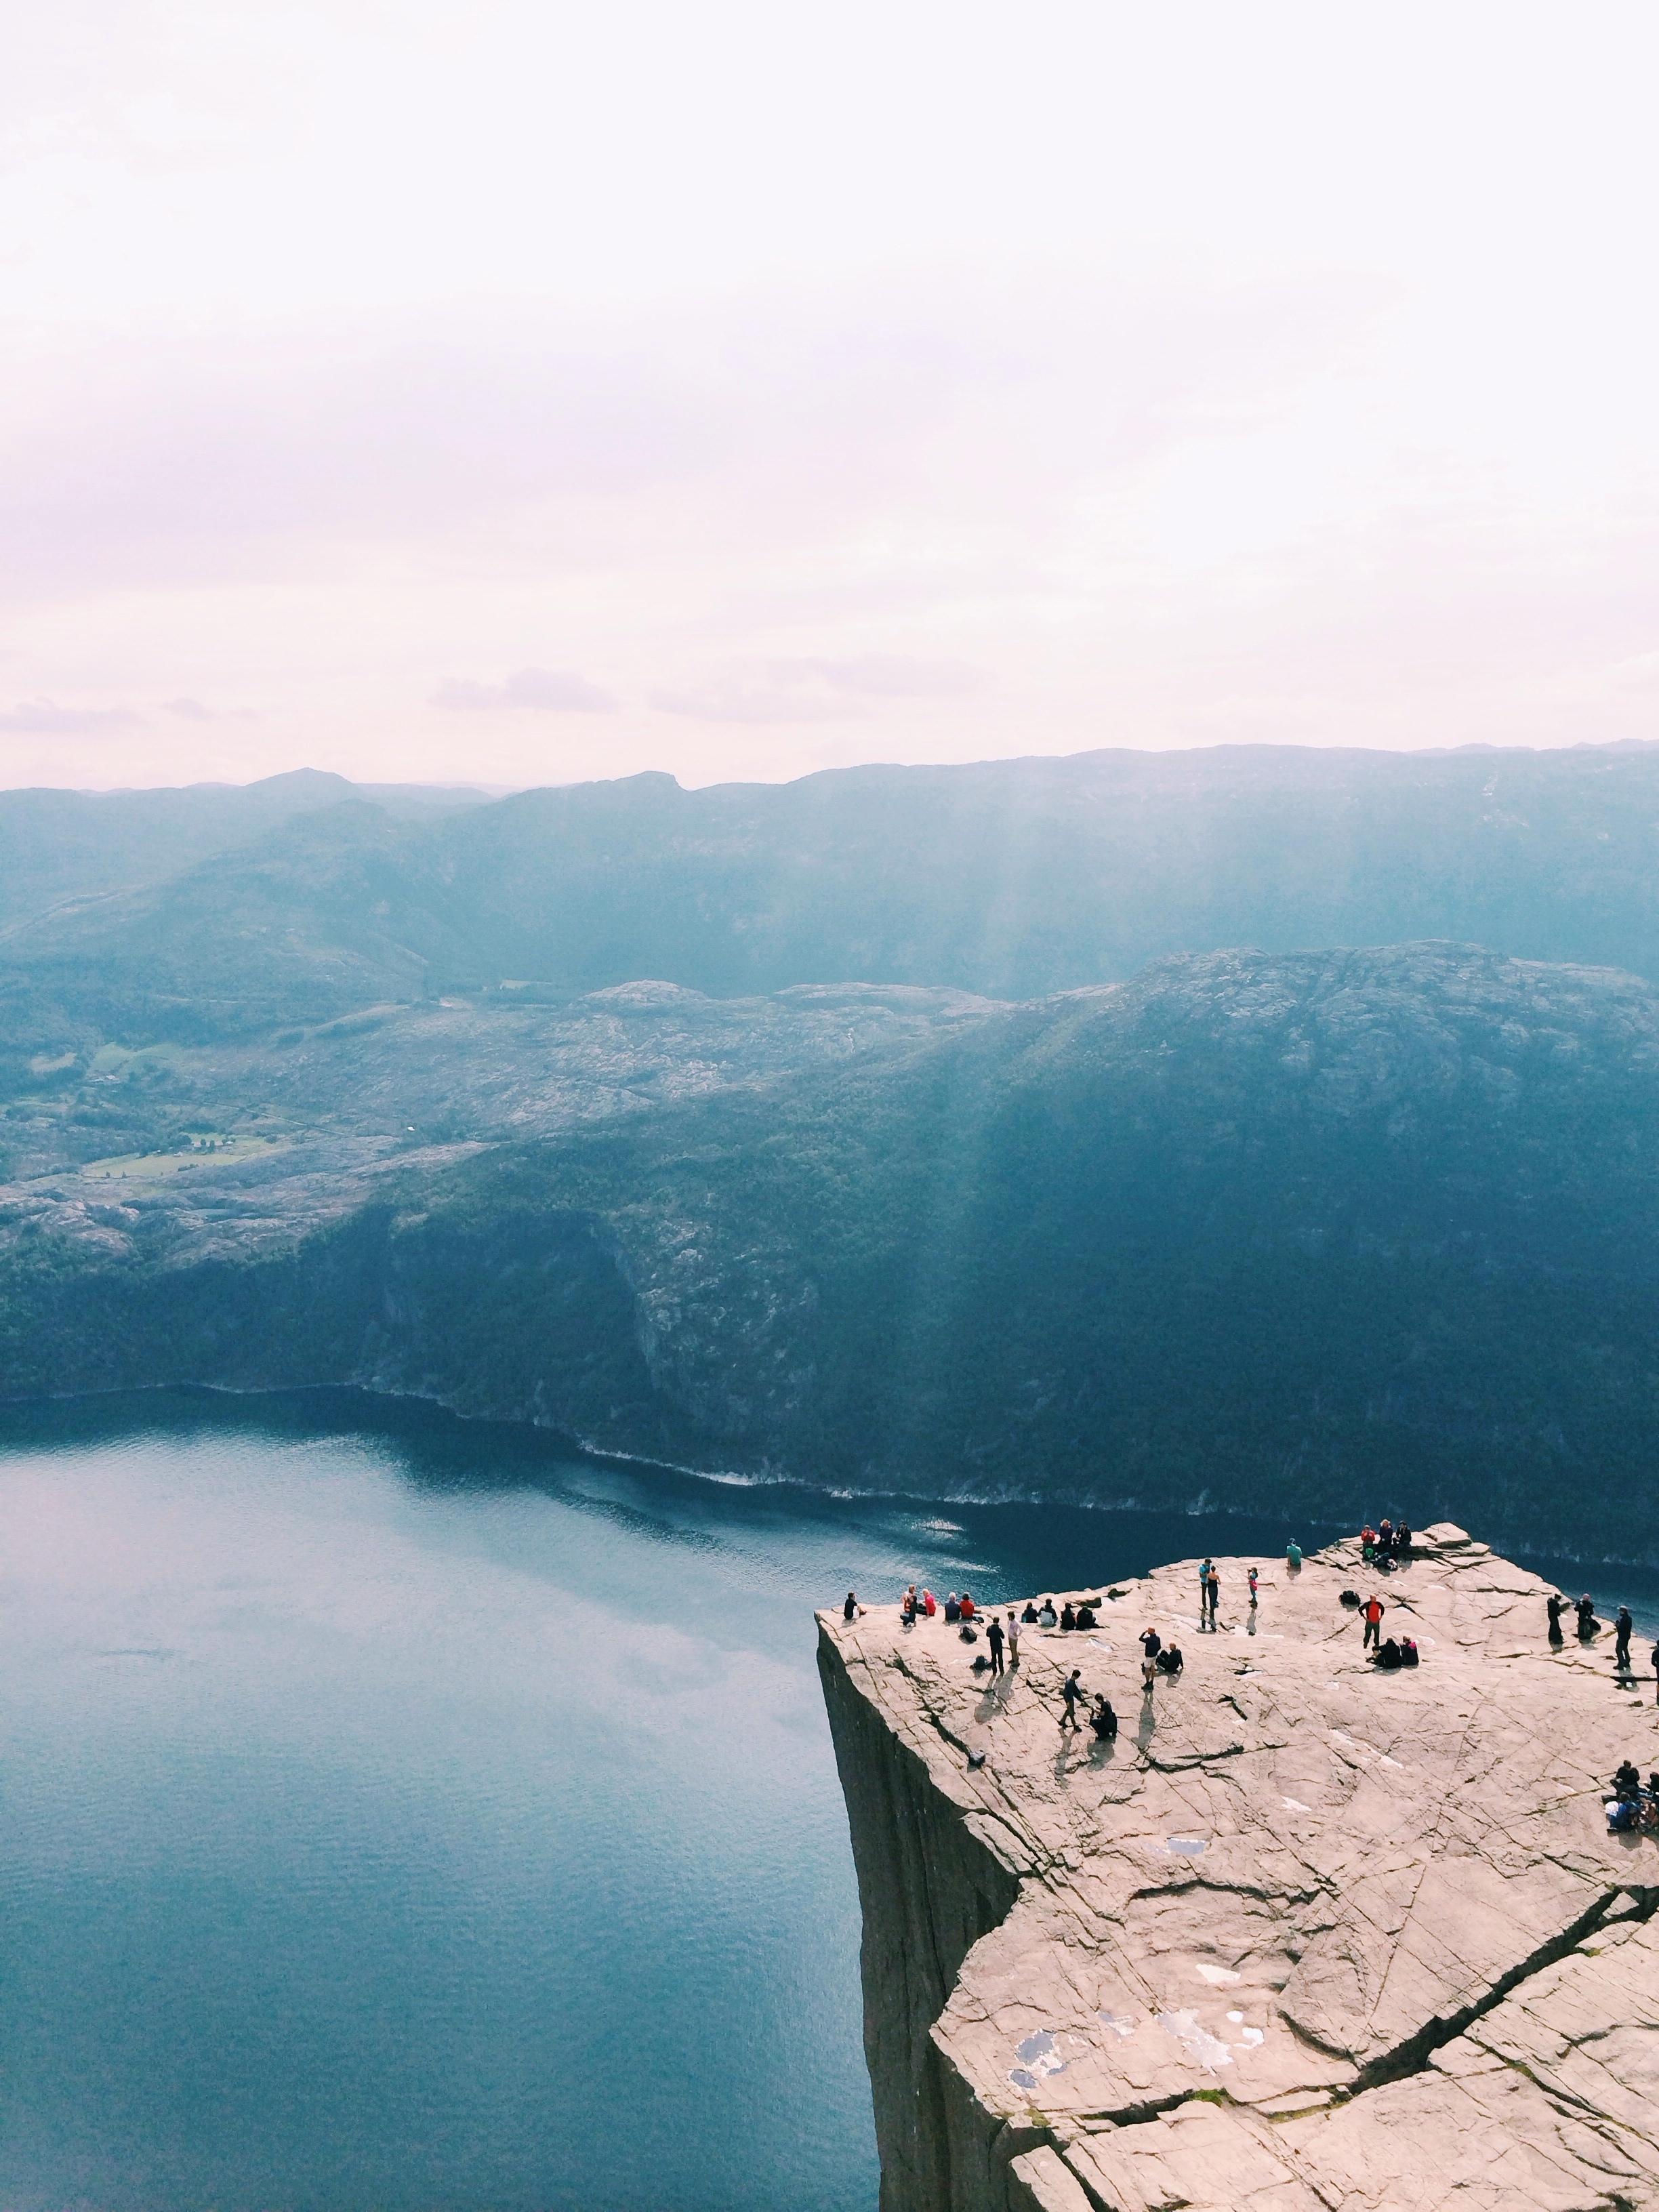 Preikestolen, or Pulpit Rock